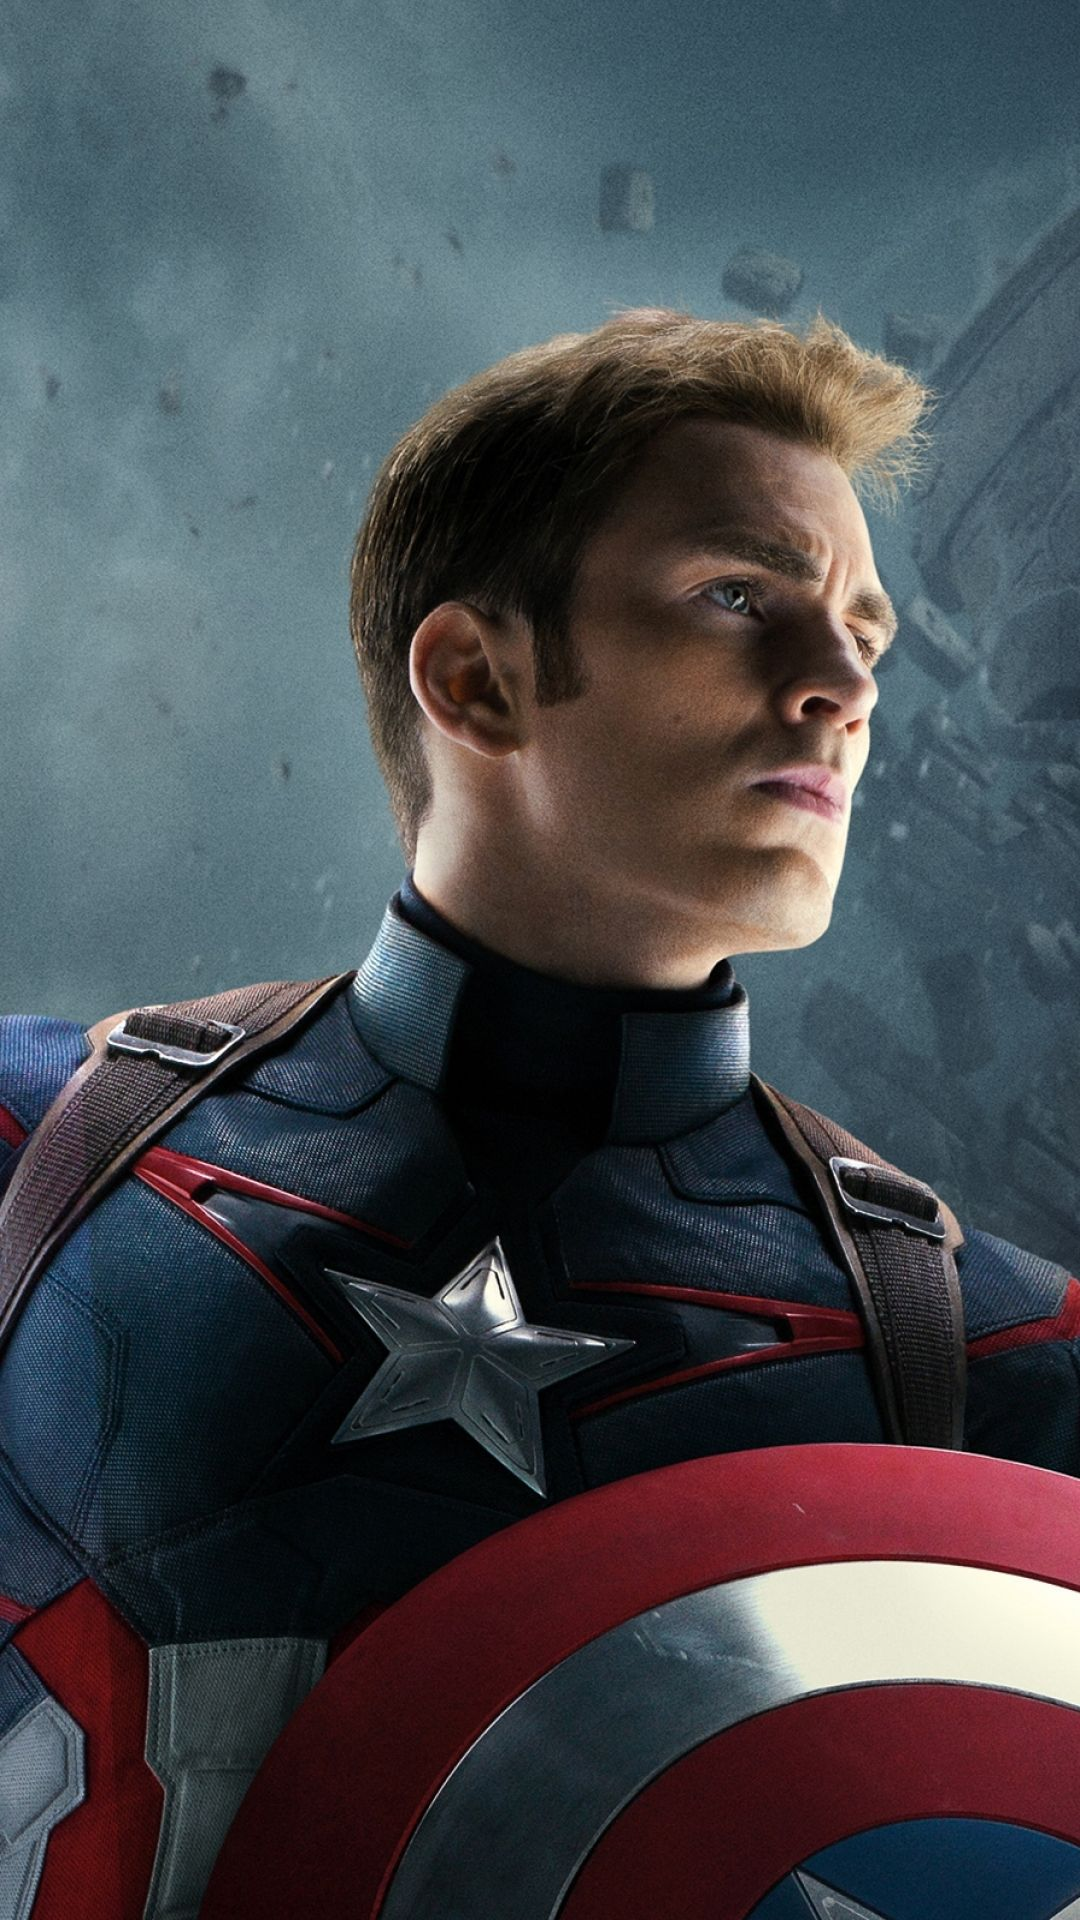 Captain America Cinematics Wallpapers Ideas In 2020 Captain